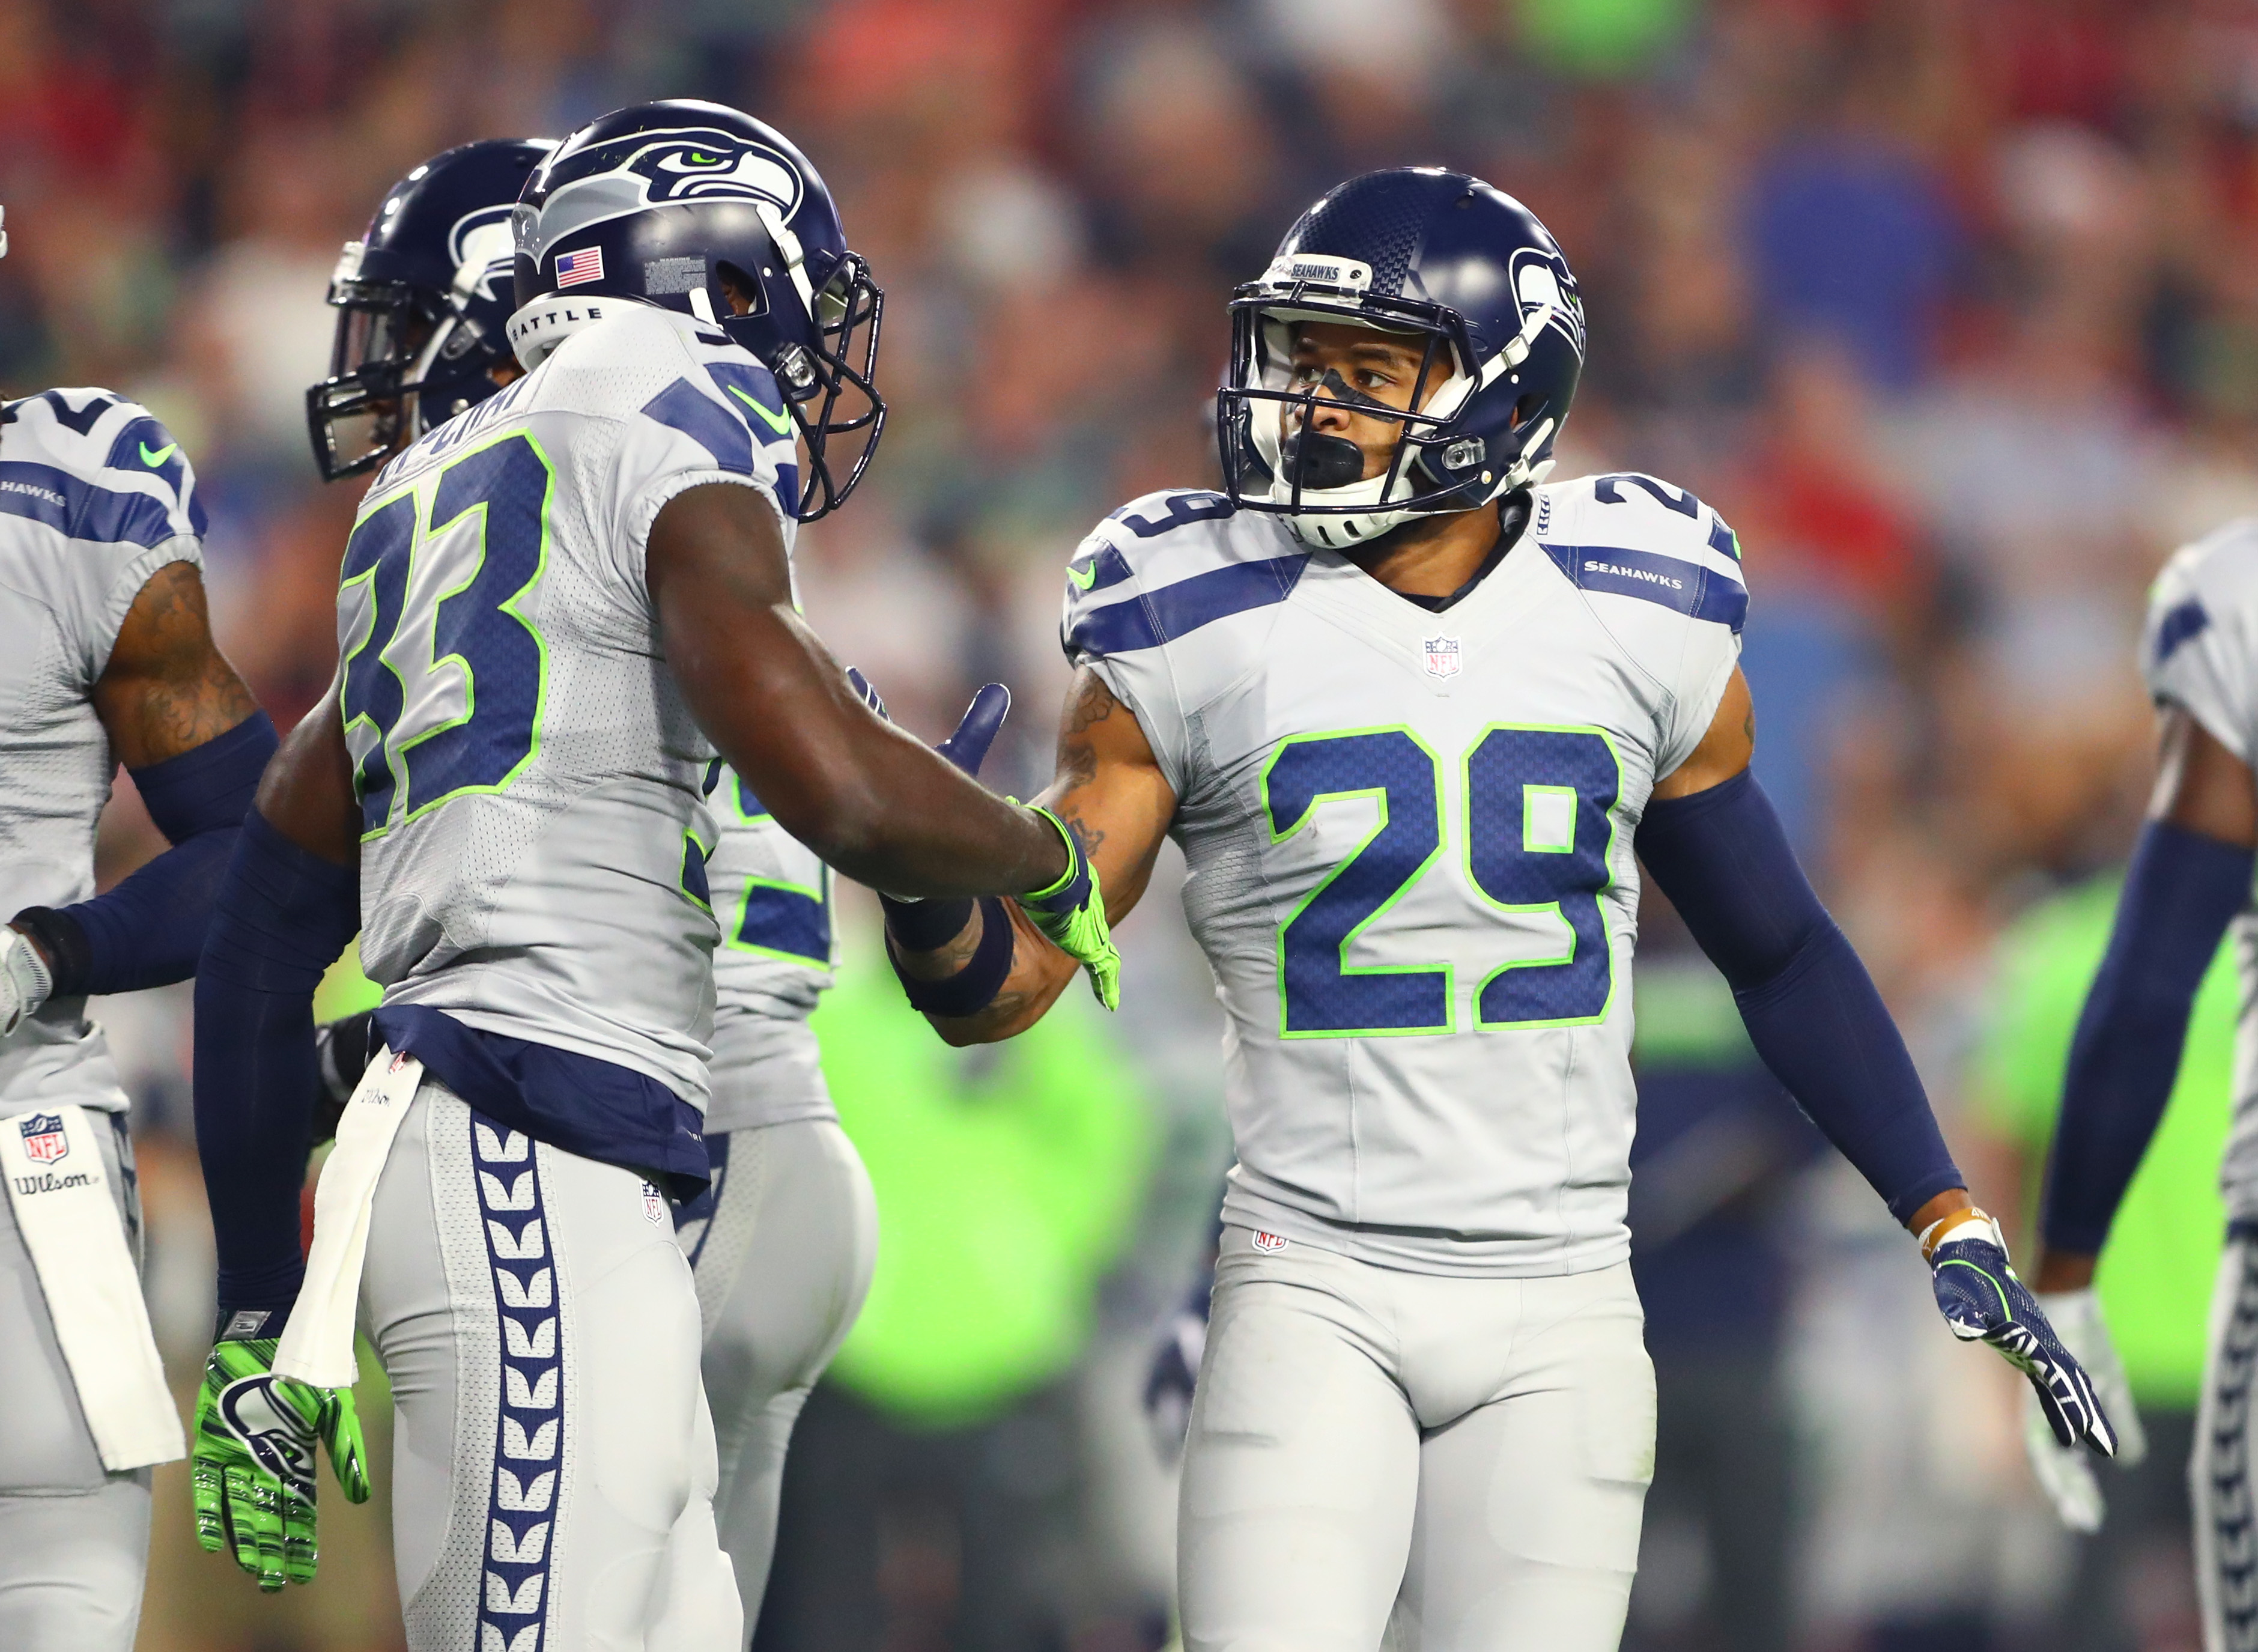 9653413-nfl-seattle-seahawks-at-arizona-cardinals